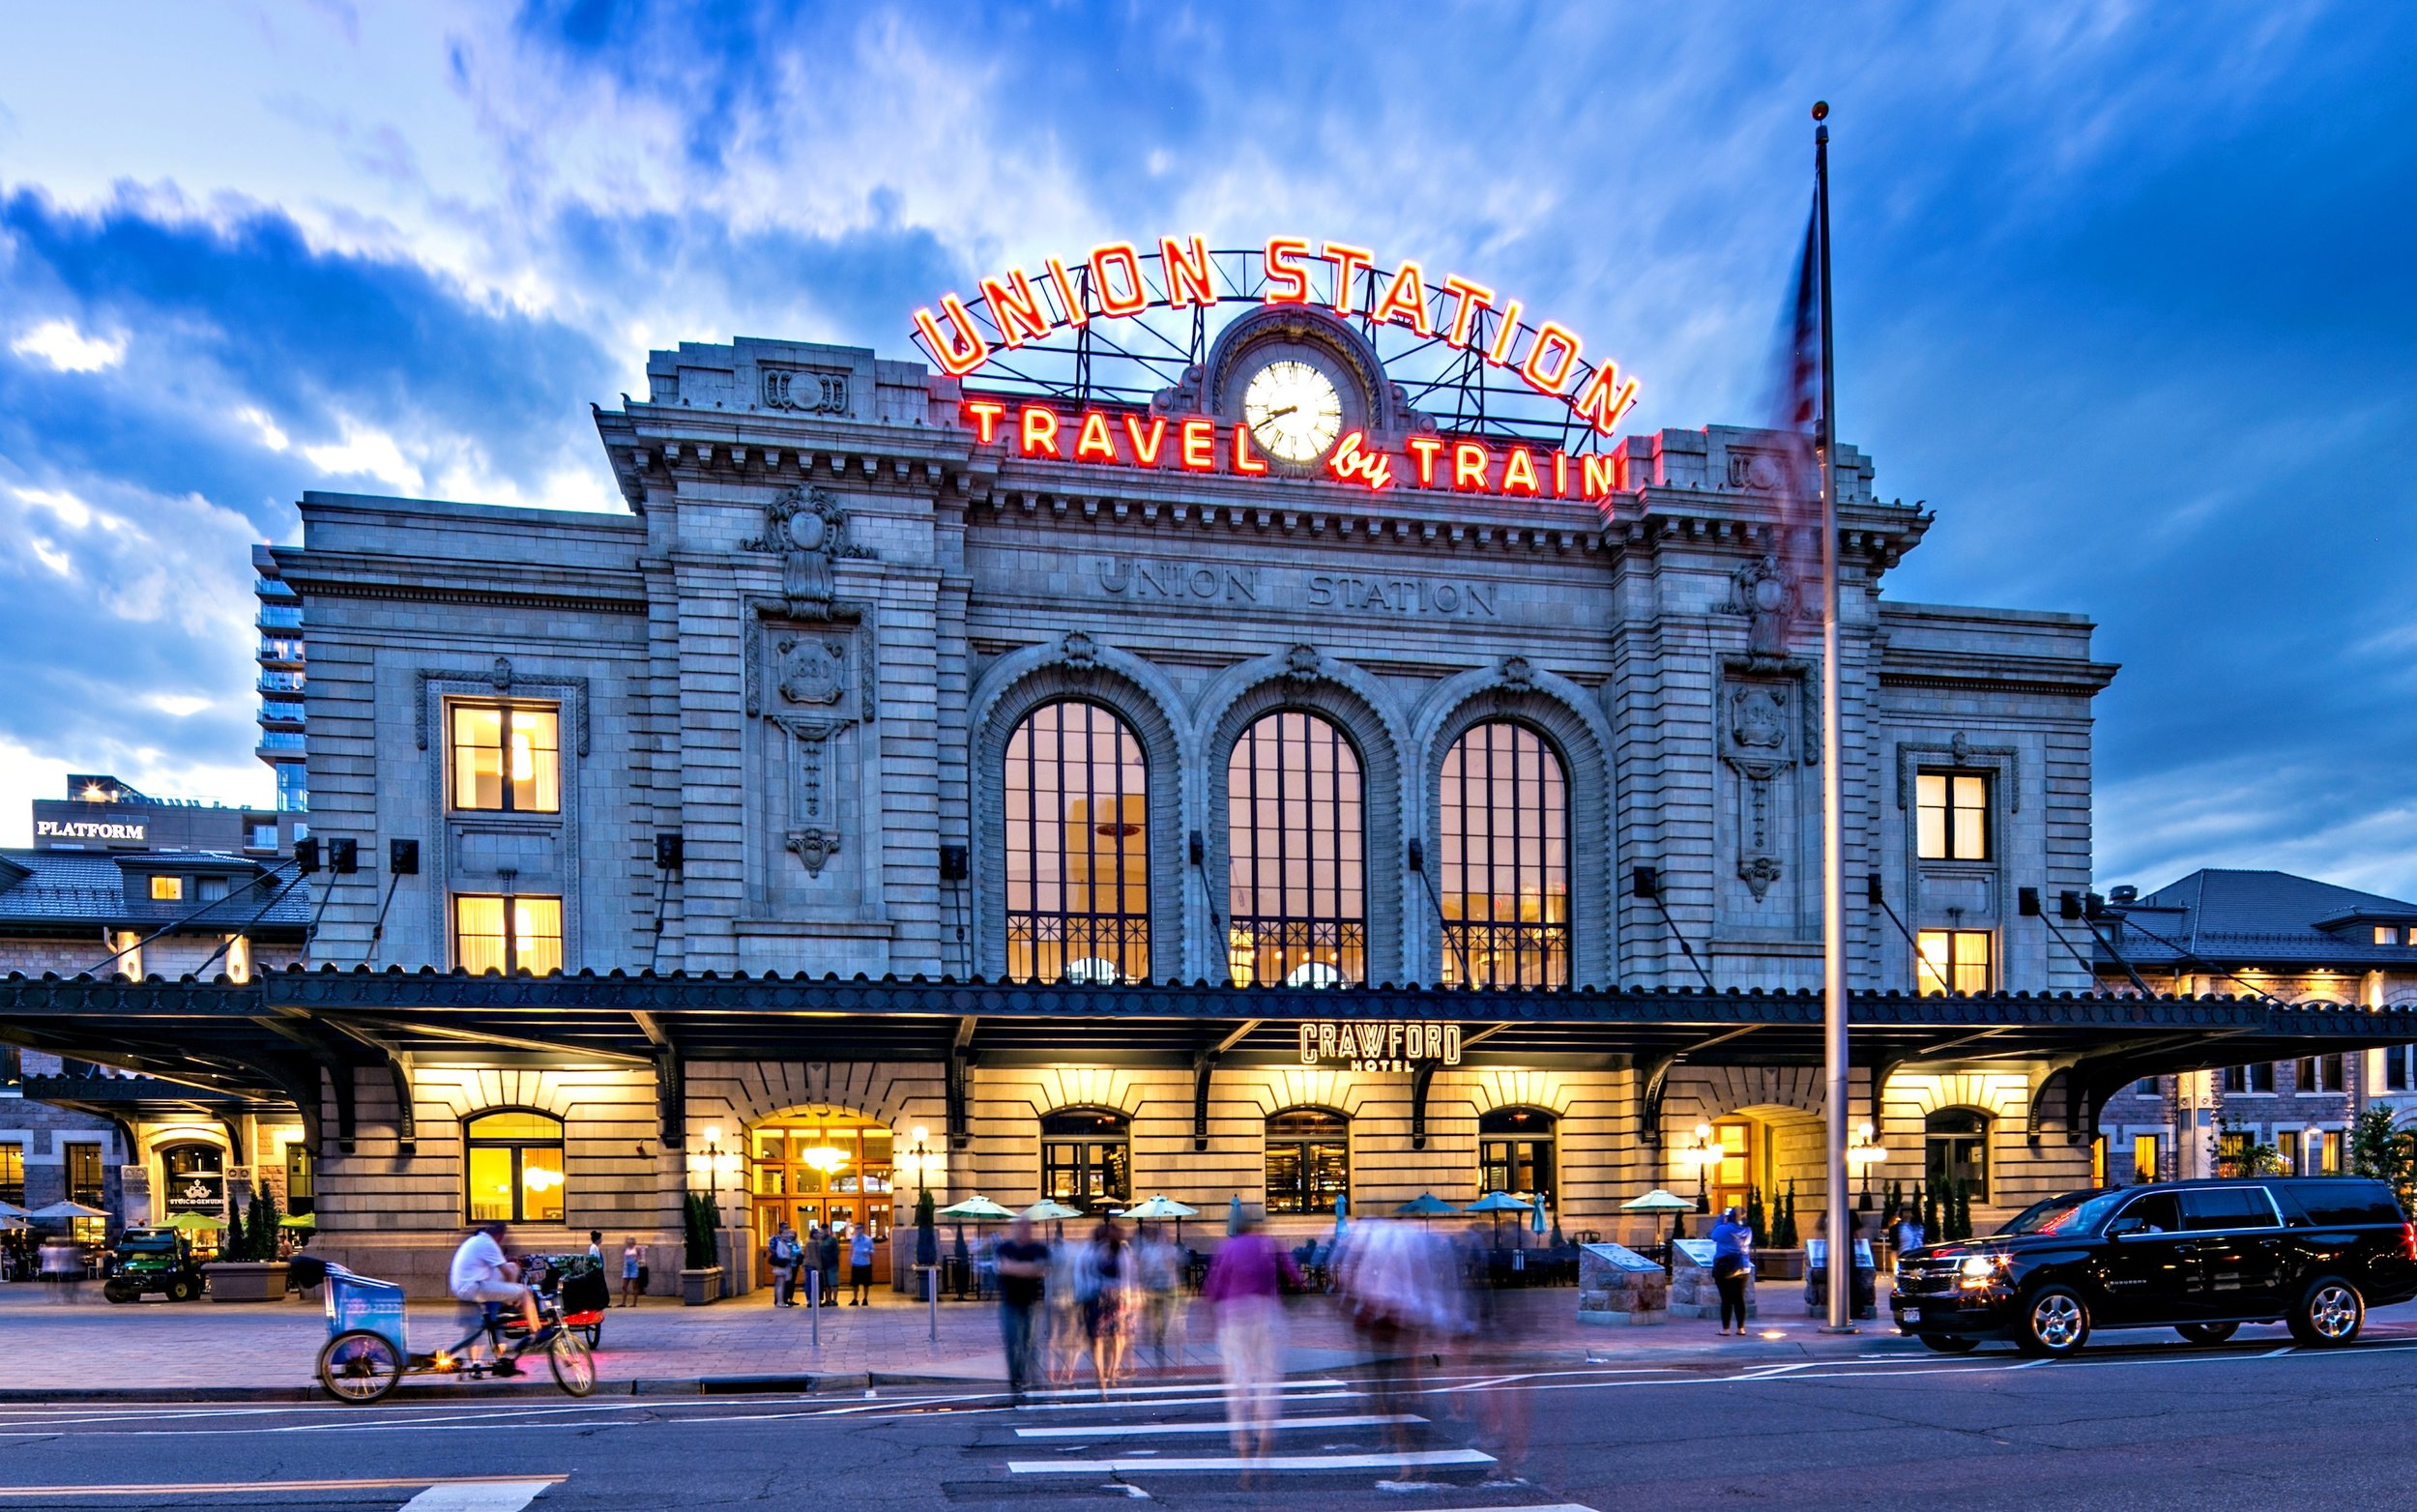 denver_union_station_exterior_2015_991321c8-7b2b-4f91-bd96-1c8826647822.jpg